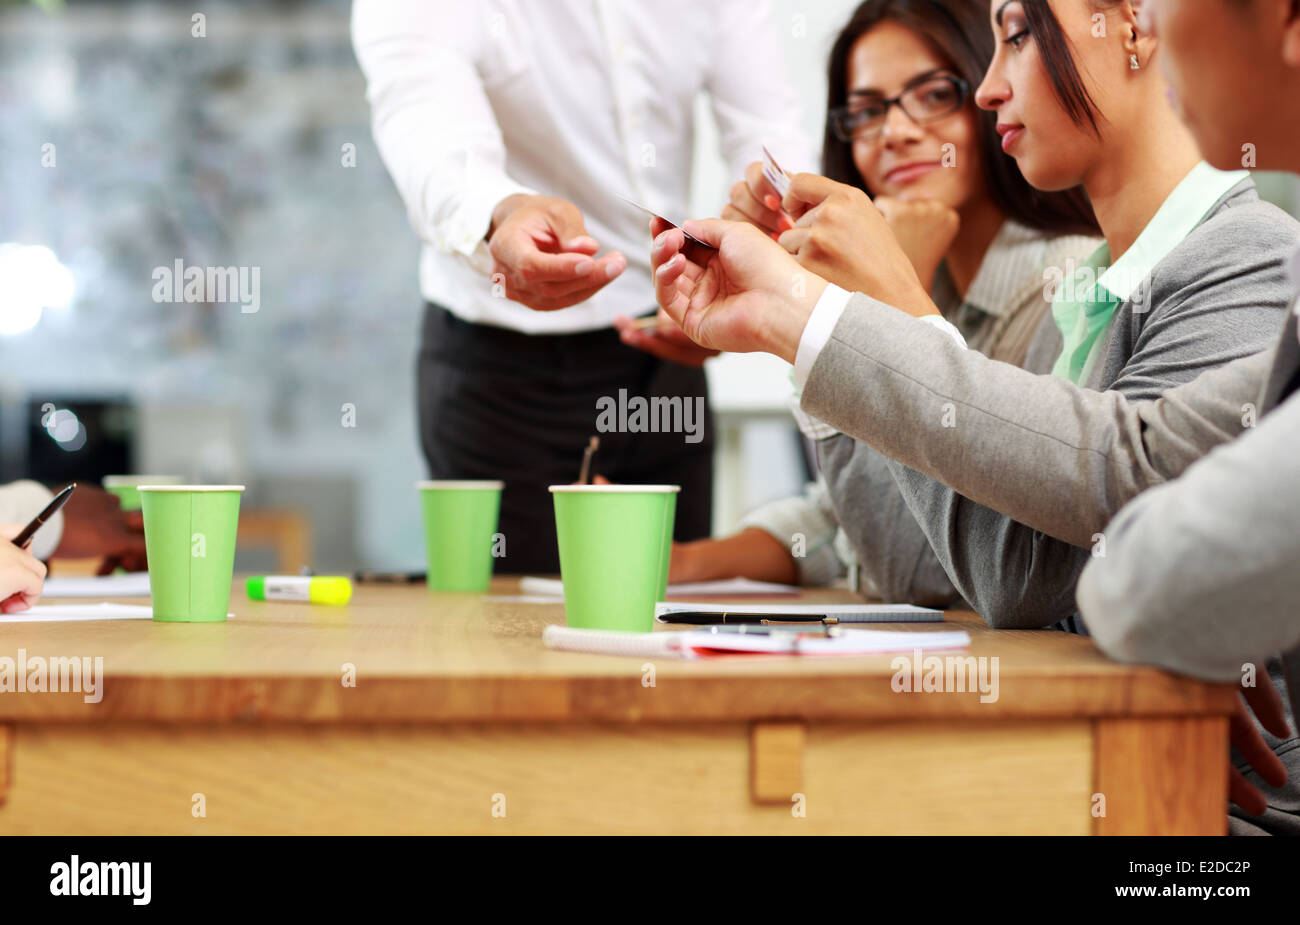 Businessman handing out a business card in meeting - Stock Image